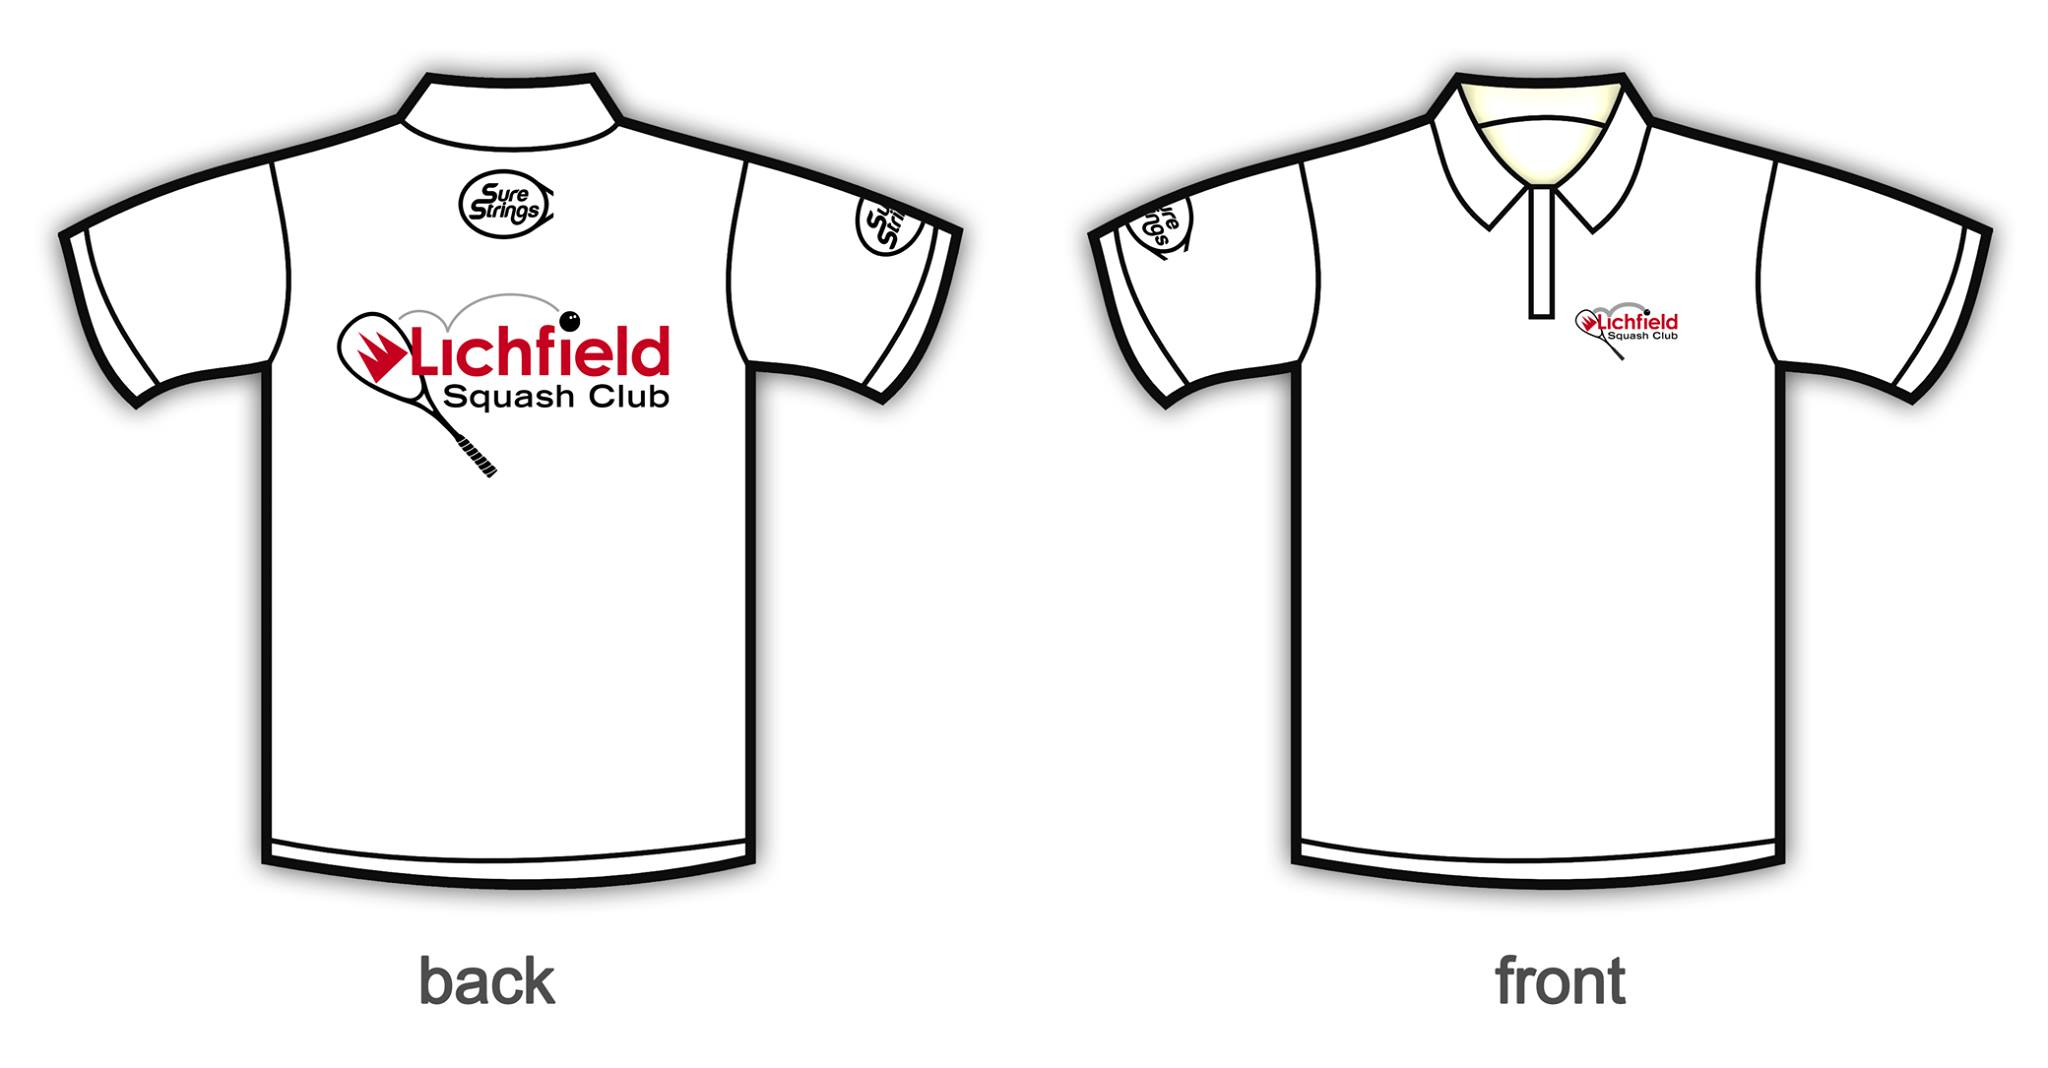 Team shirt mock up